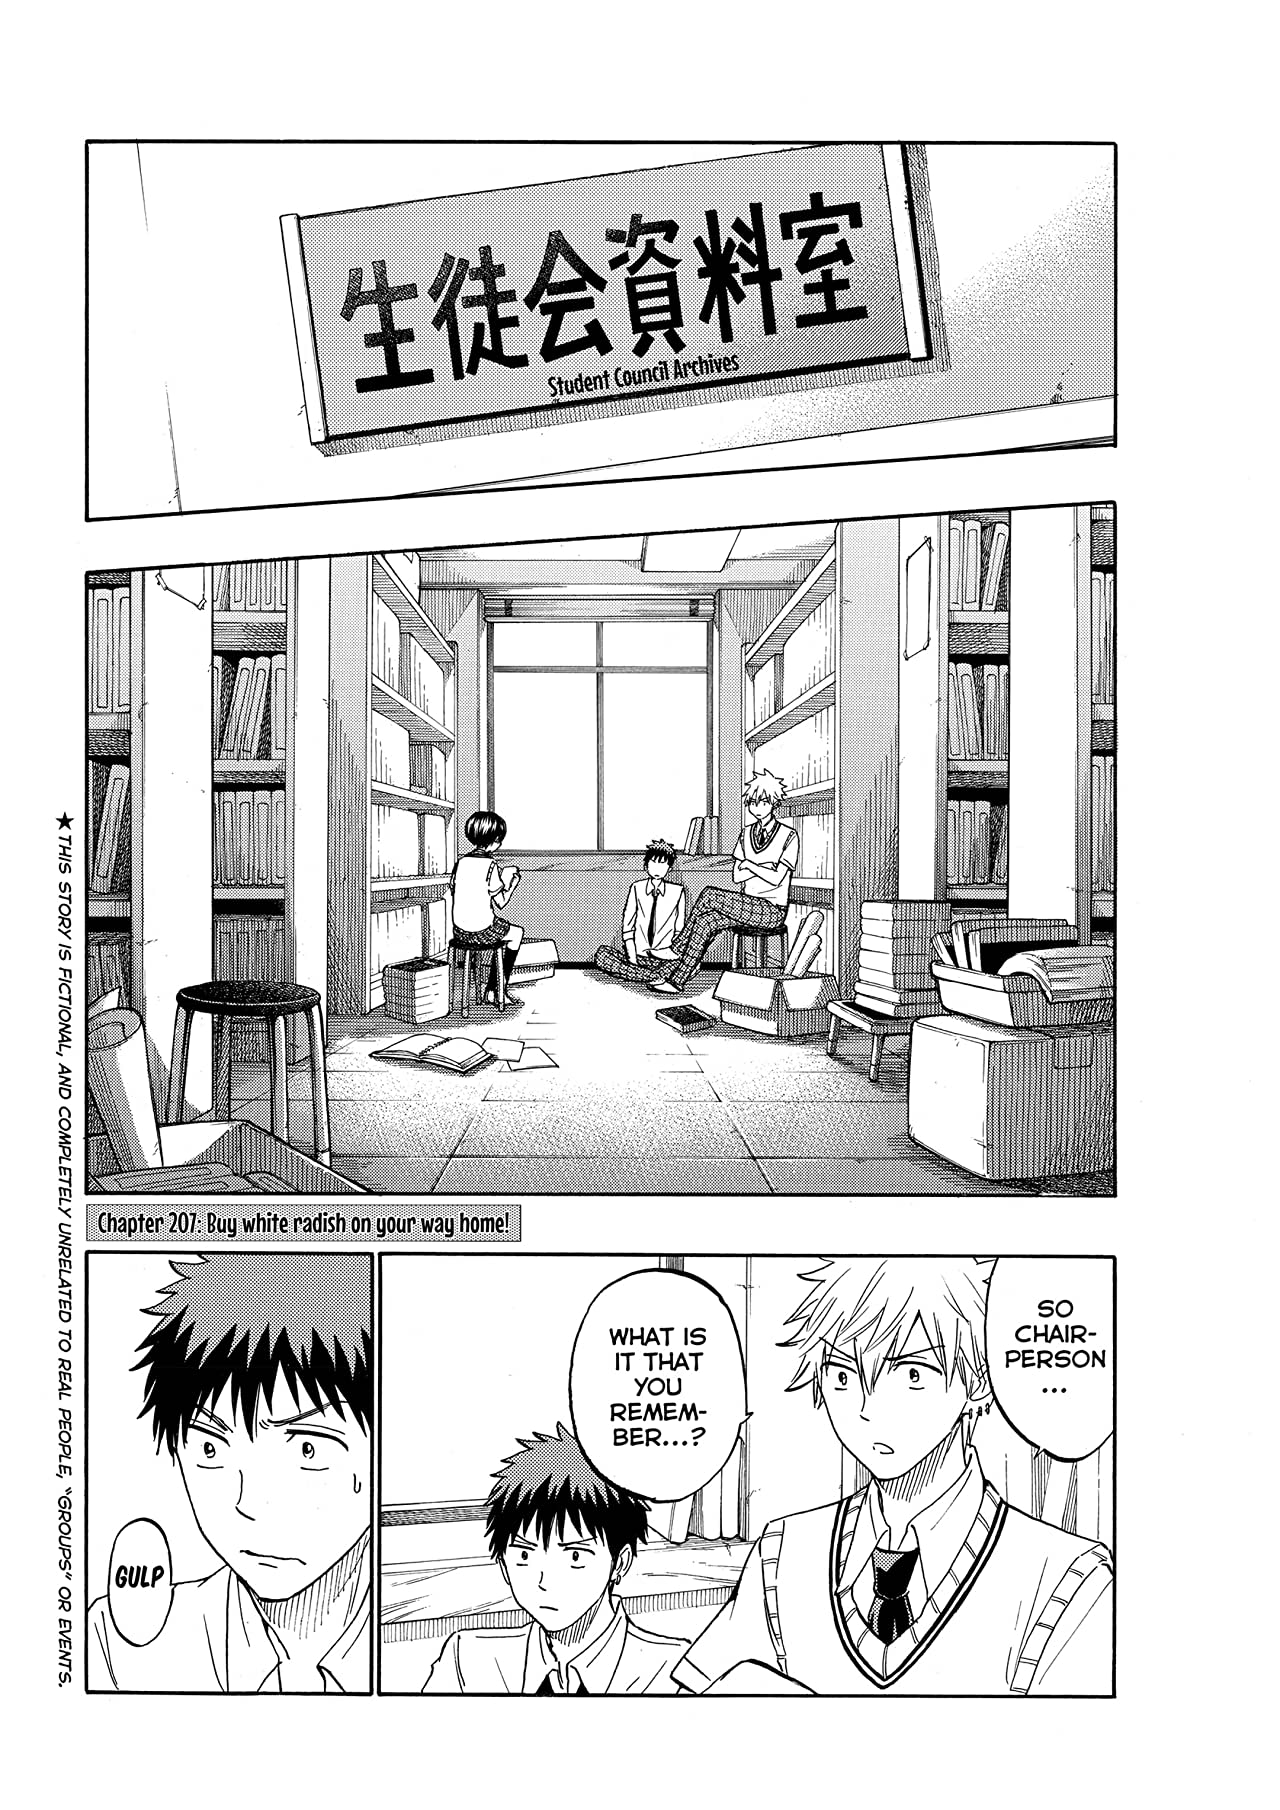 Yamada-kun and the Seven Witches #207